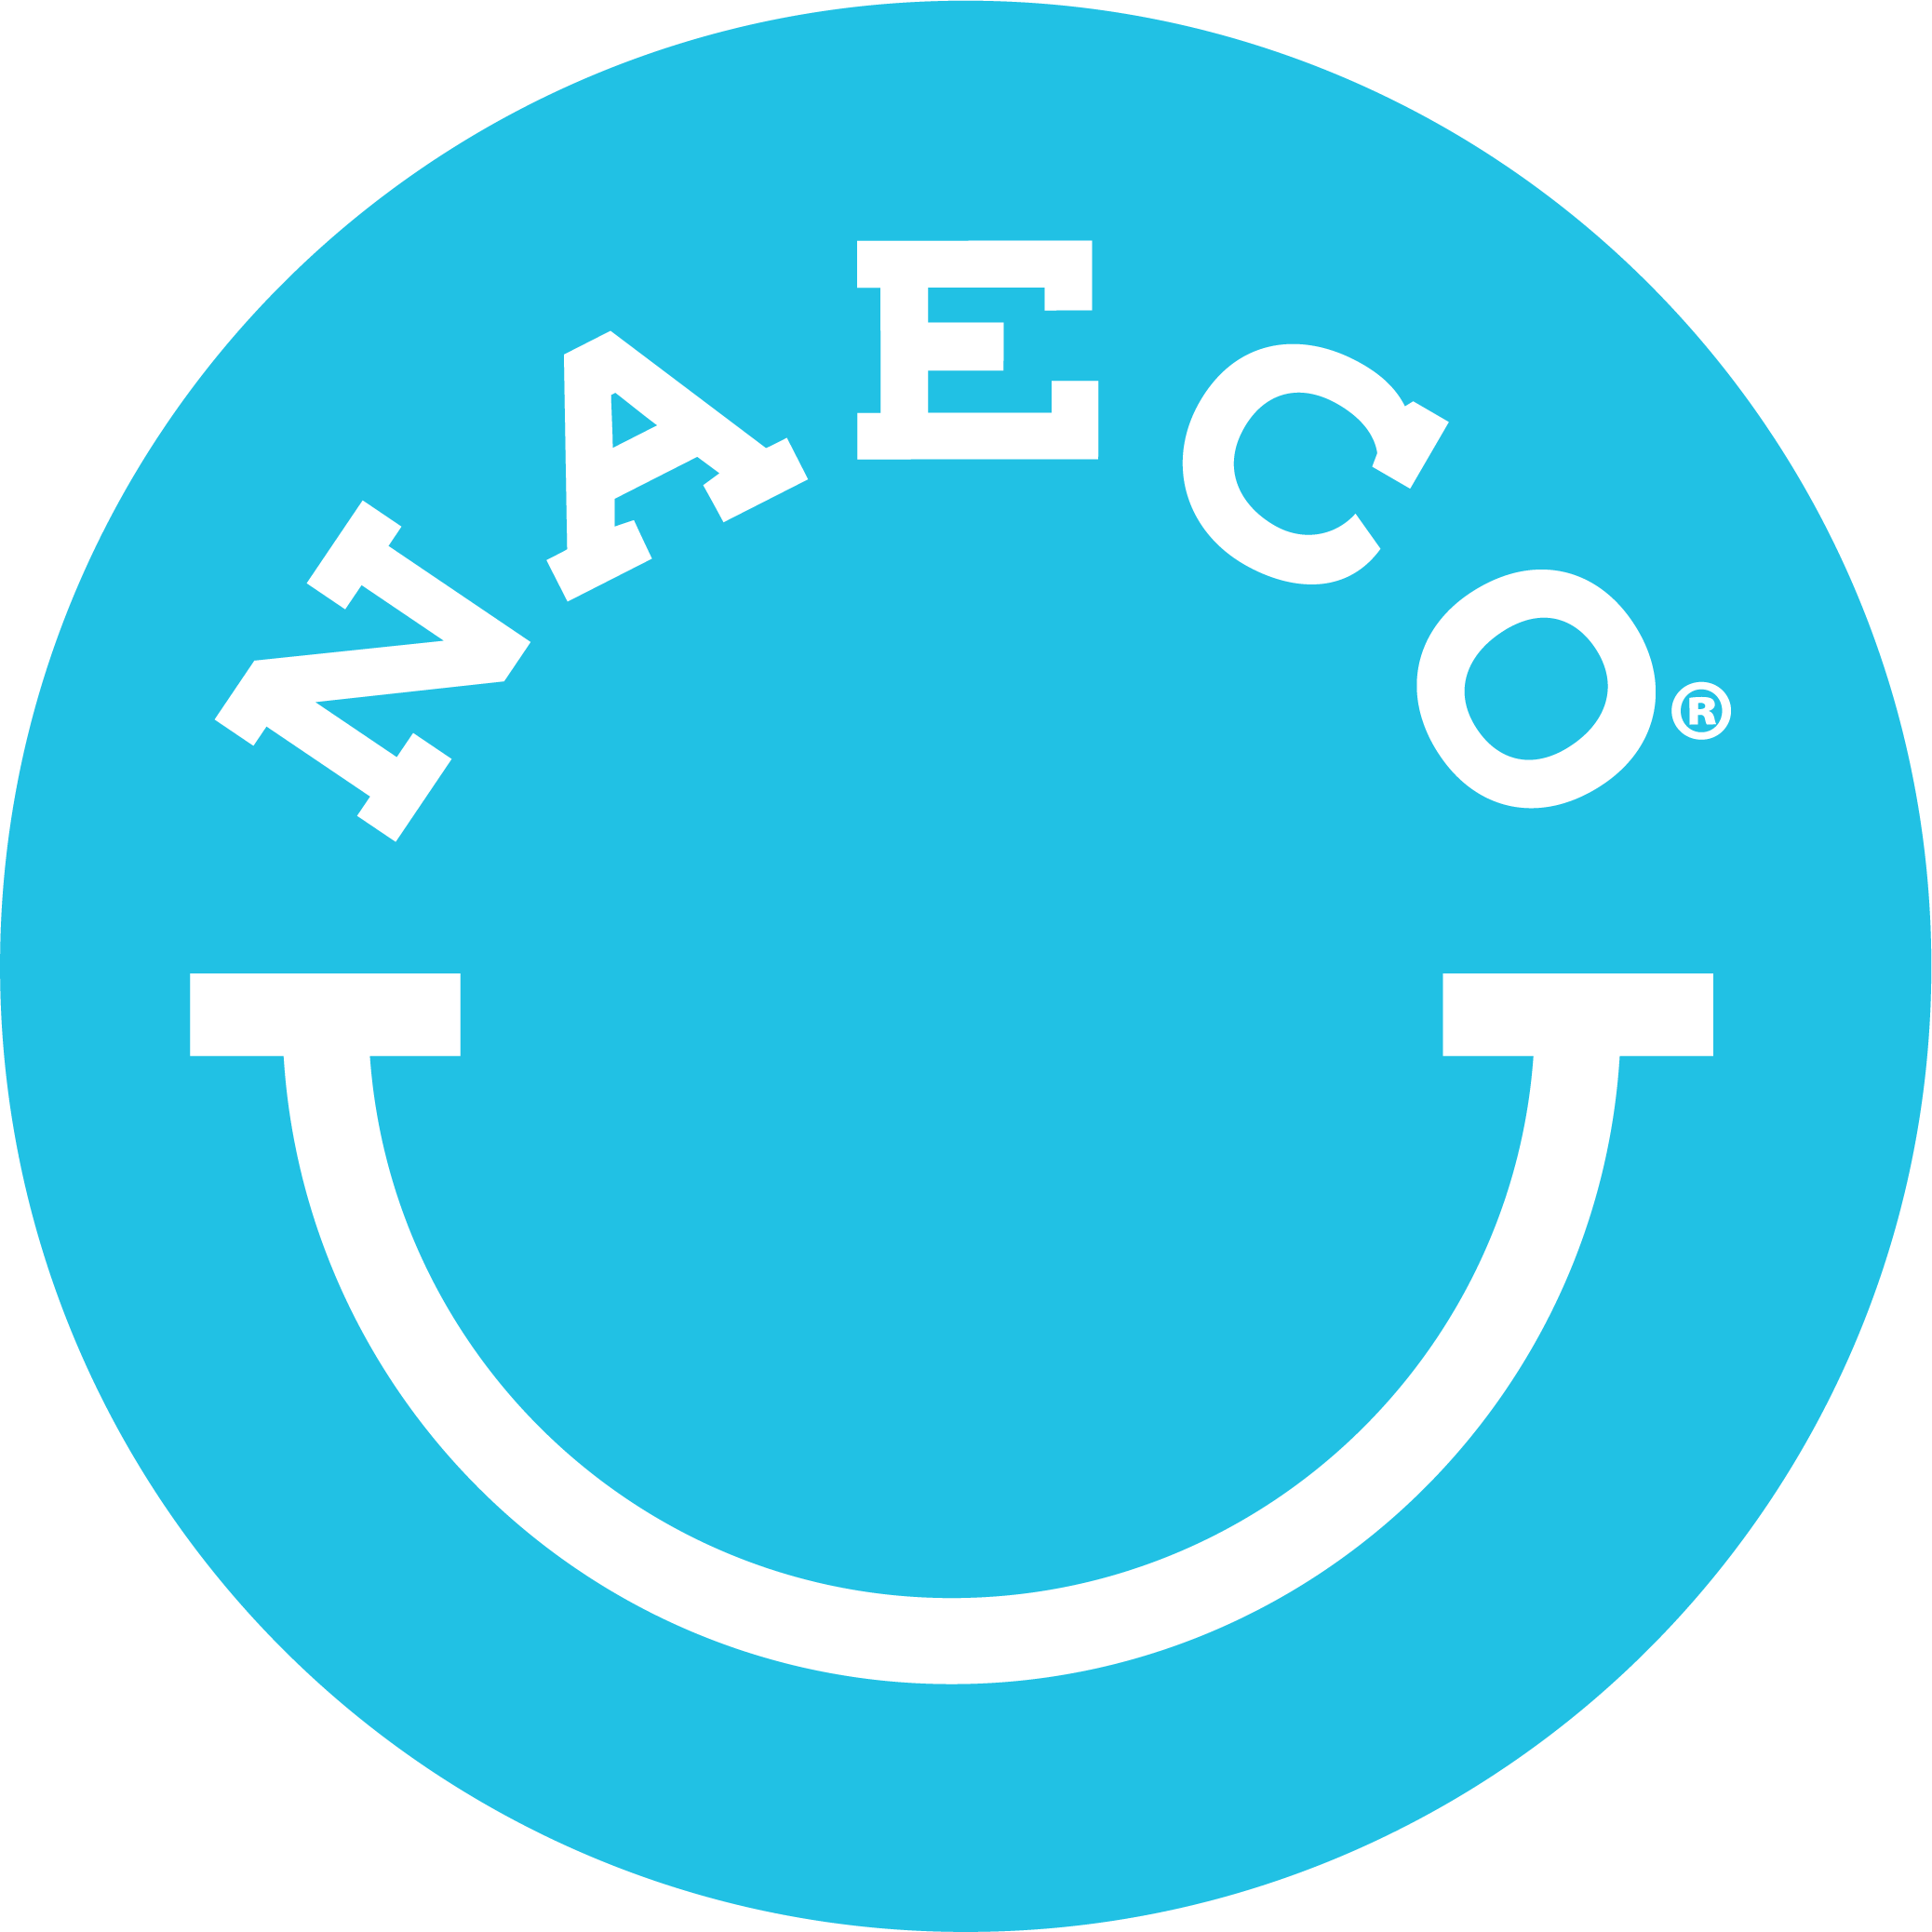 NAECO_Logo-Blue-circle-White-Text.png